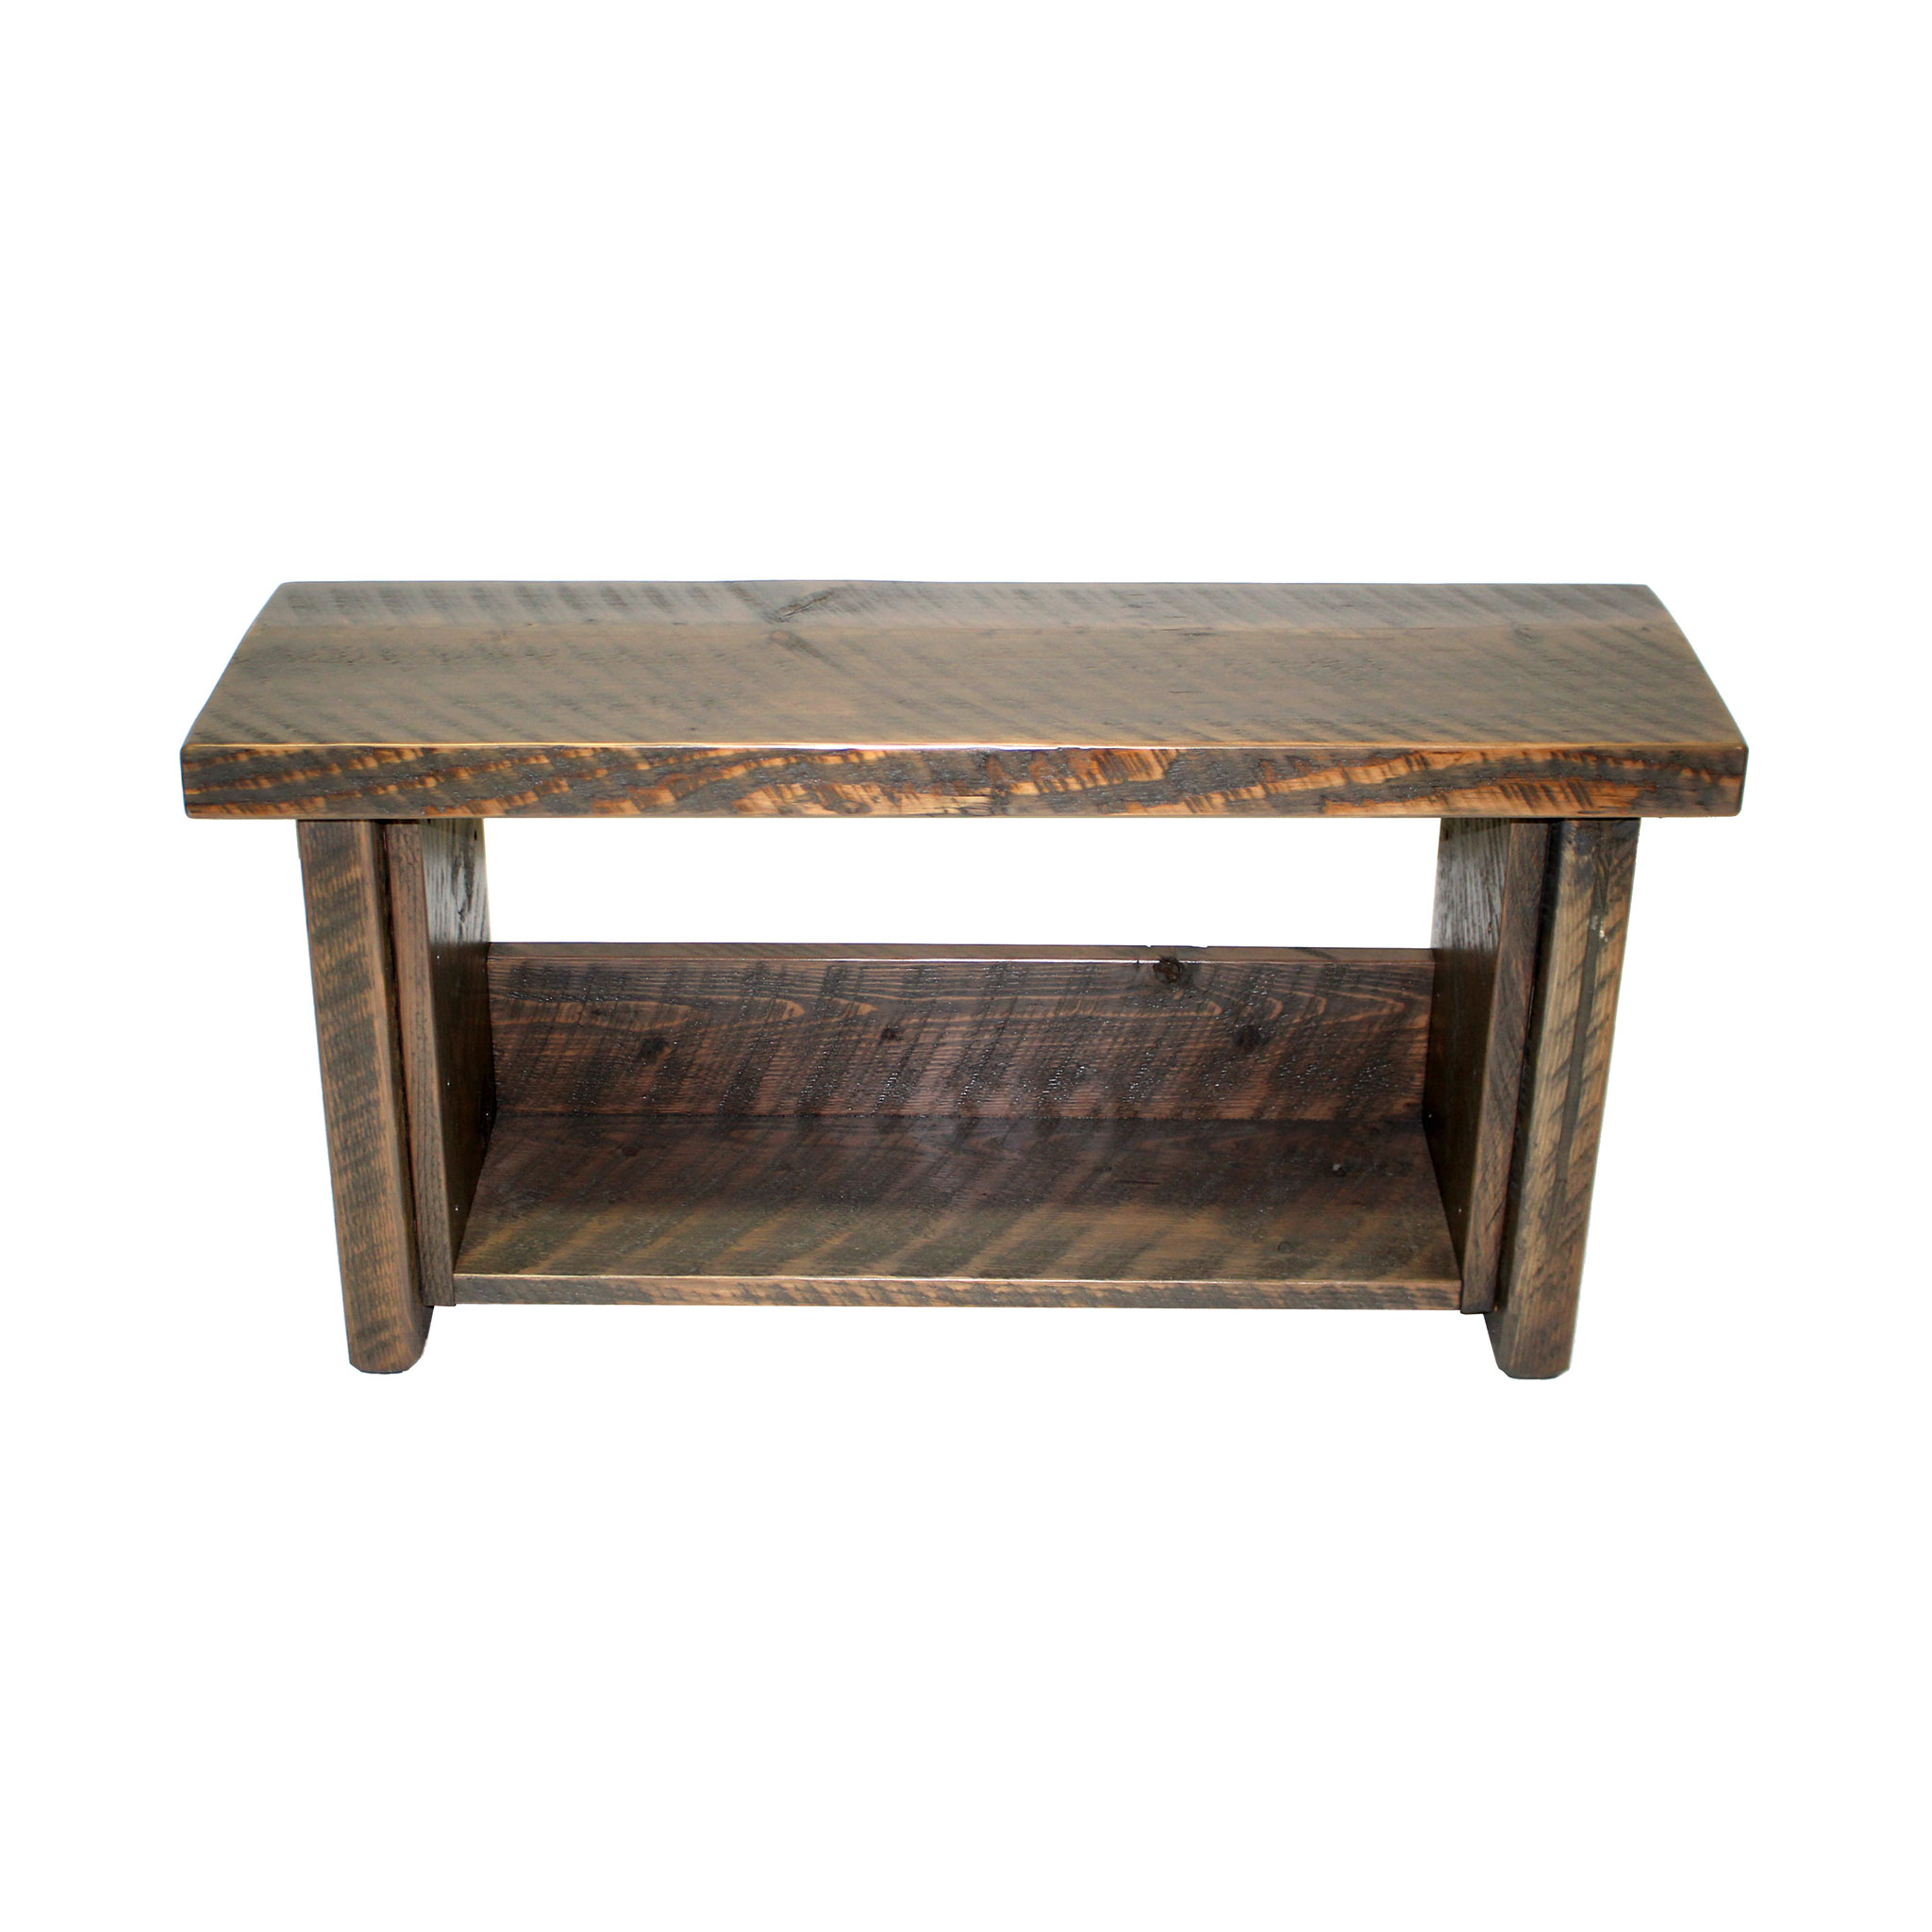 Genial Rustic Storage Shelf Bench 1